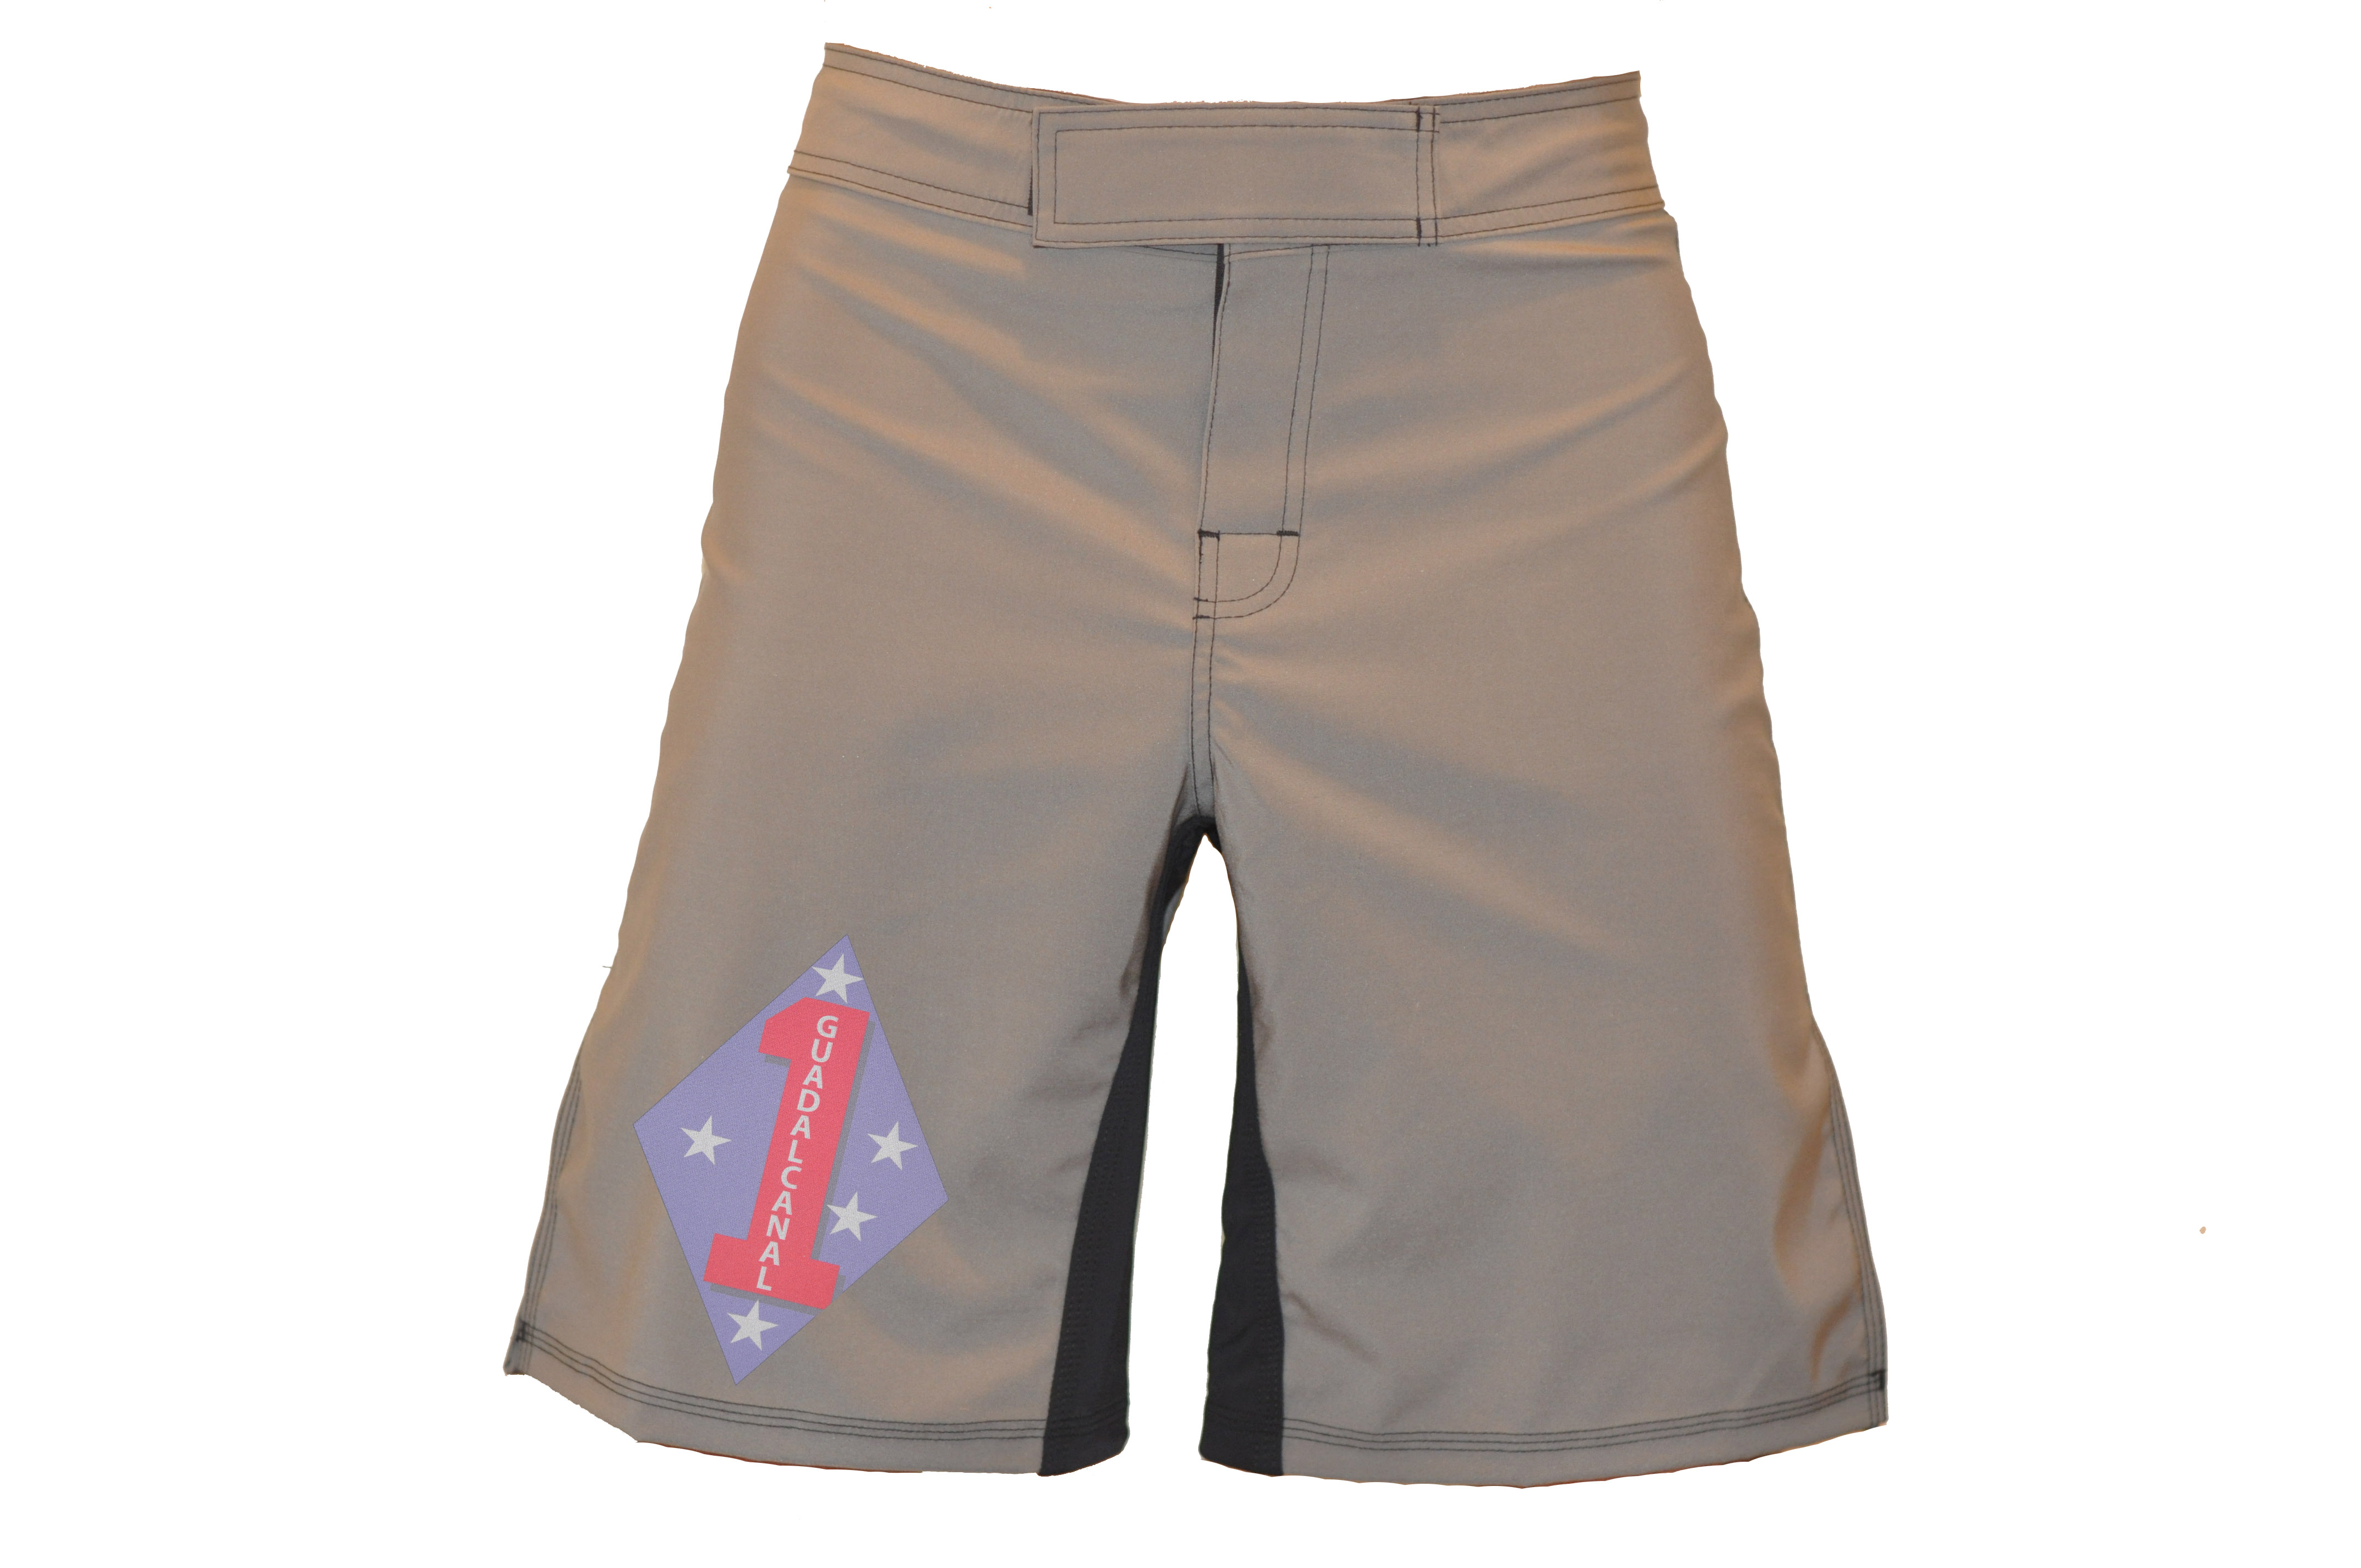 Grey_20shorts_201st_20battalion_201st_20marine_original